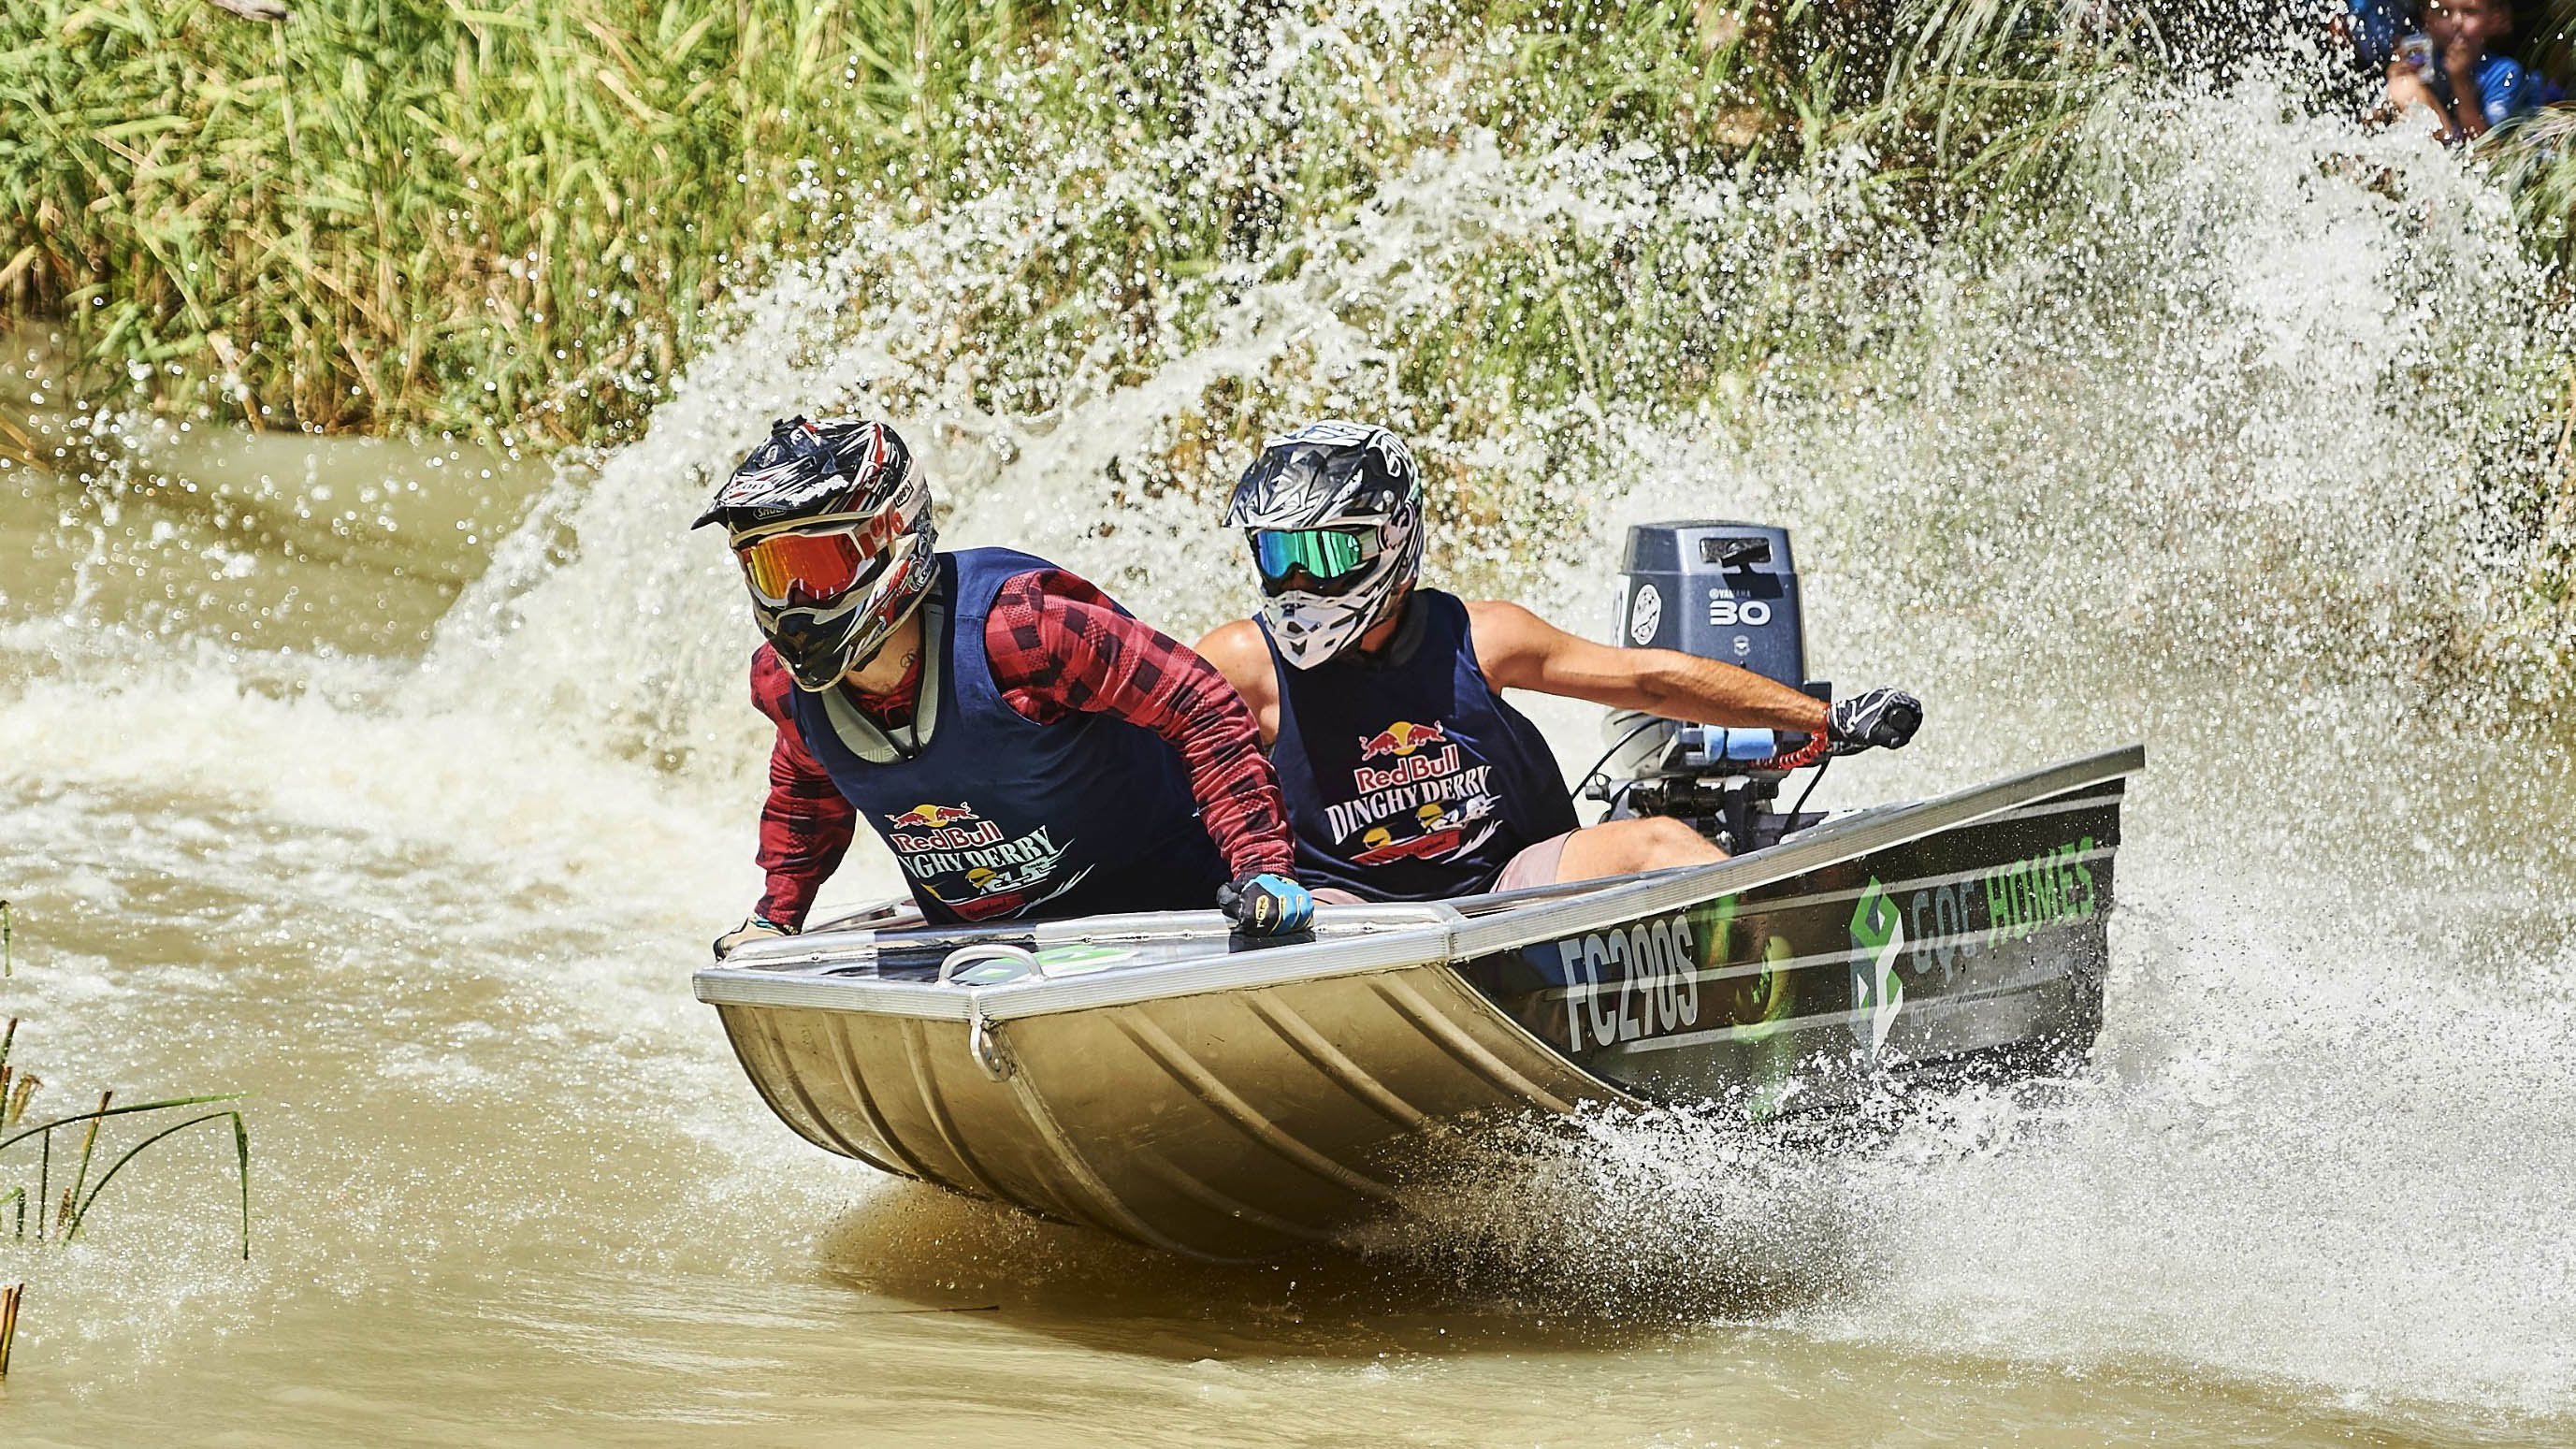 Check out this wild boat racing at australias red bull dinghy check out this wild boat racing at australias red bull dinghy derby 2016 sciox Gallery